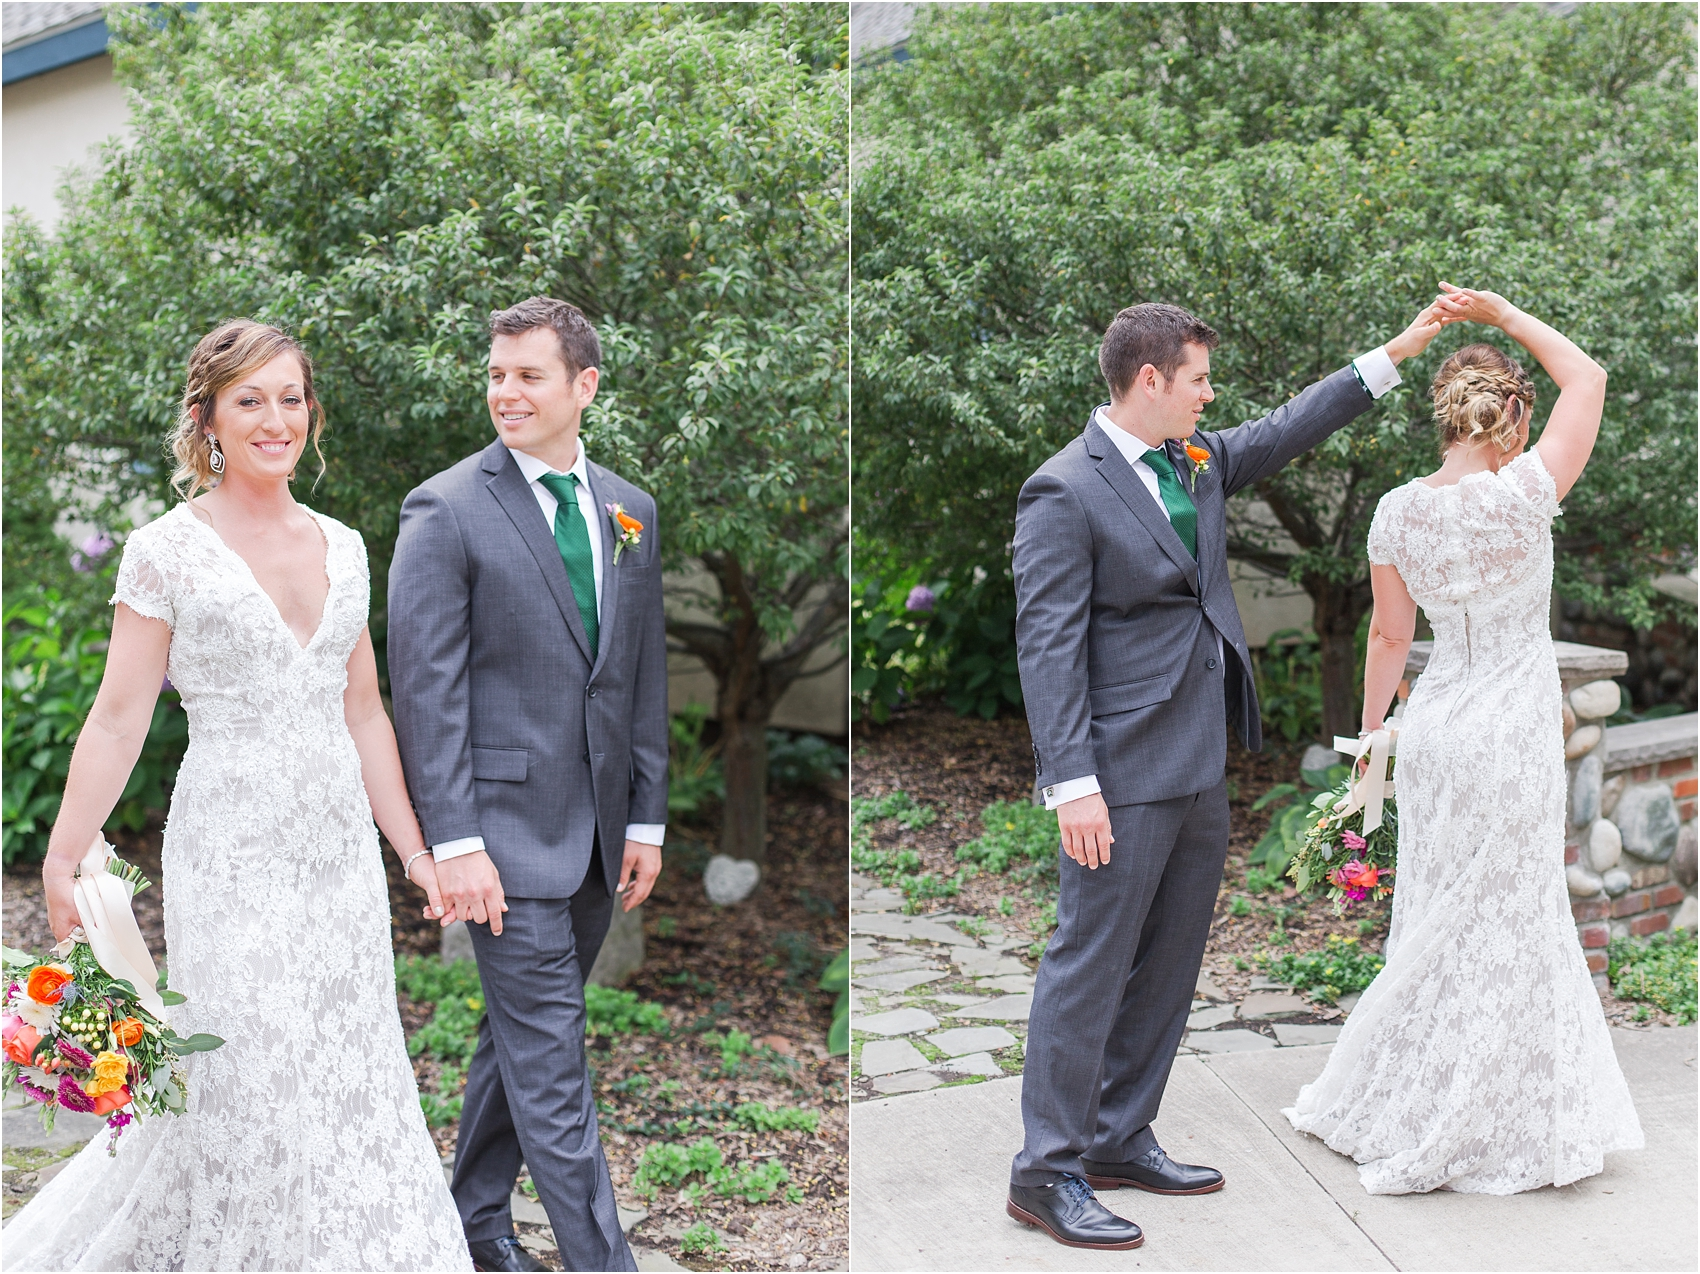 romantic-intimate-backyard-wedding-photos-at-private-estate-in-ann-arbor-mi-by-courtney-carolyn-photography_0059.jpg